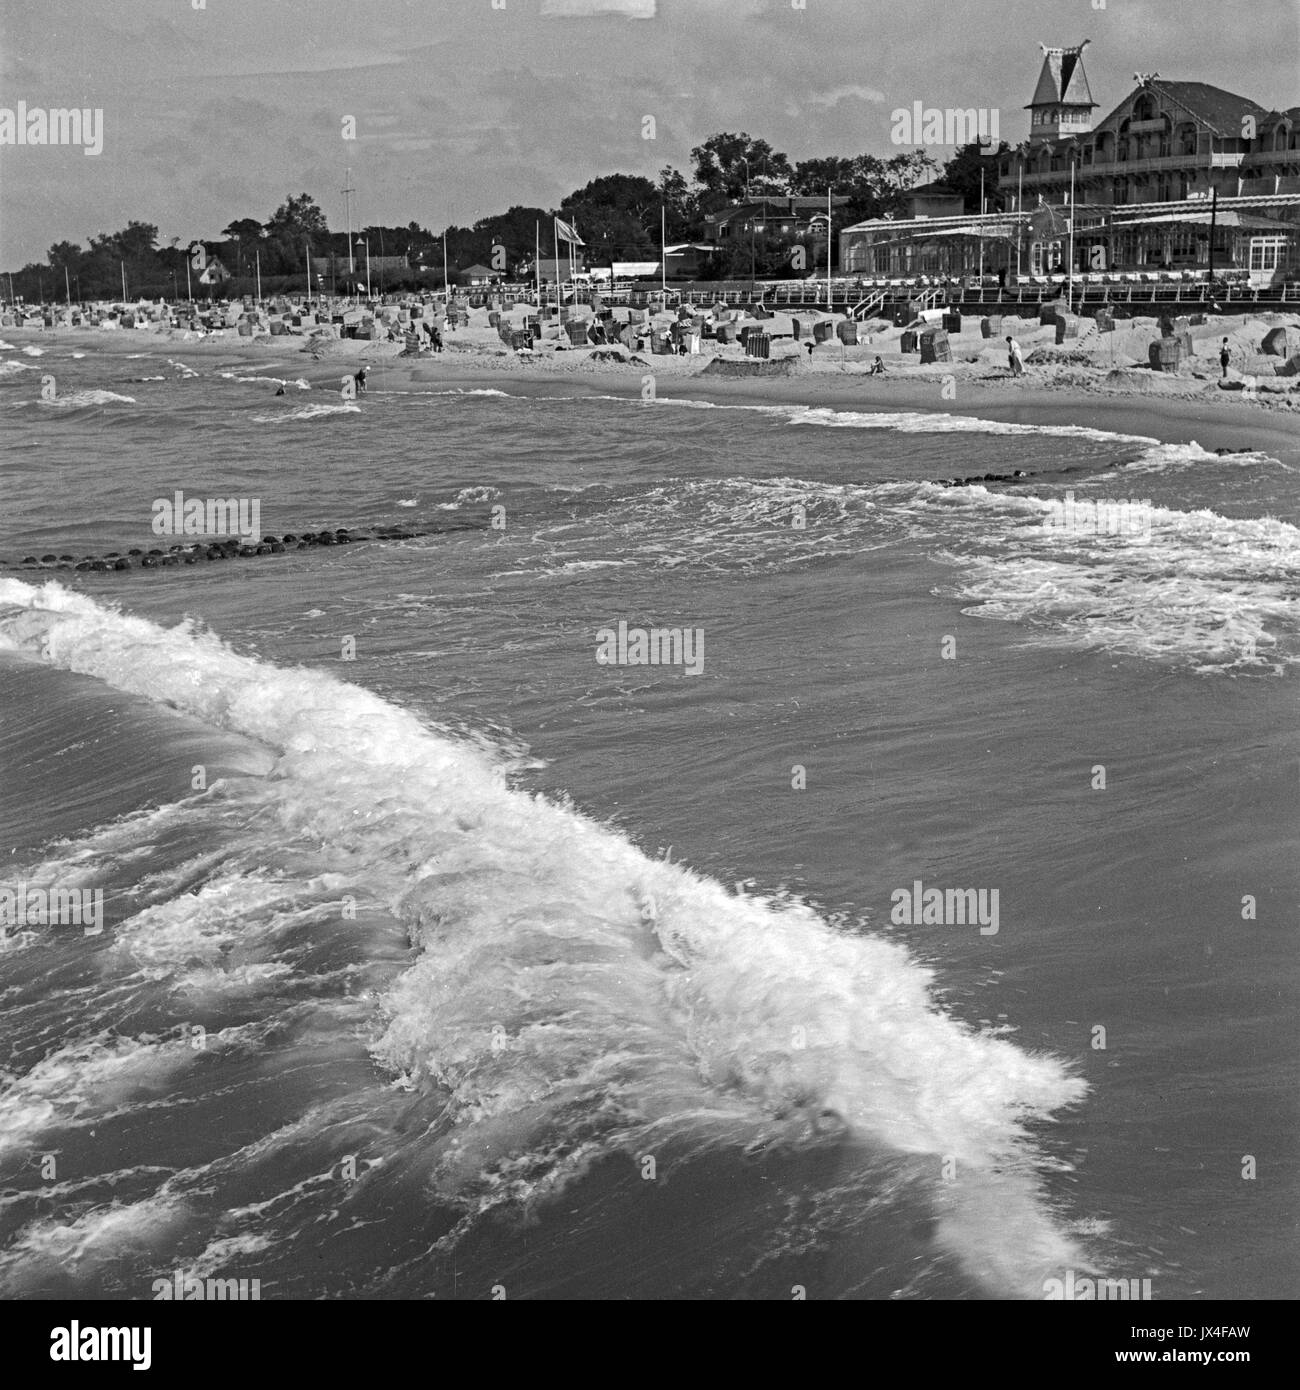 Waves along shoreline at seaside resort. - Stock Image